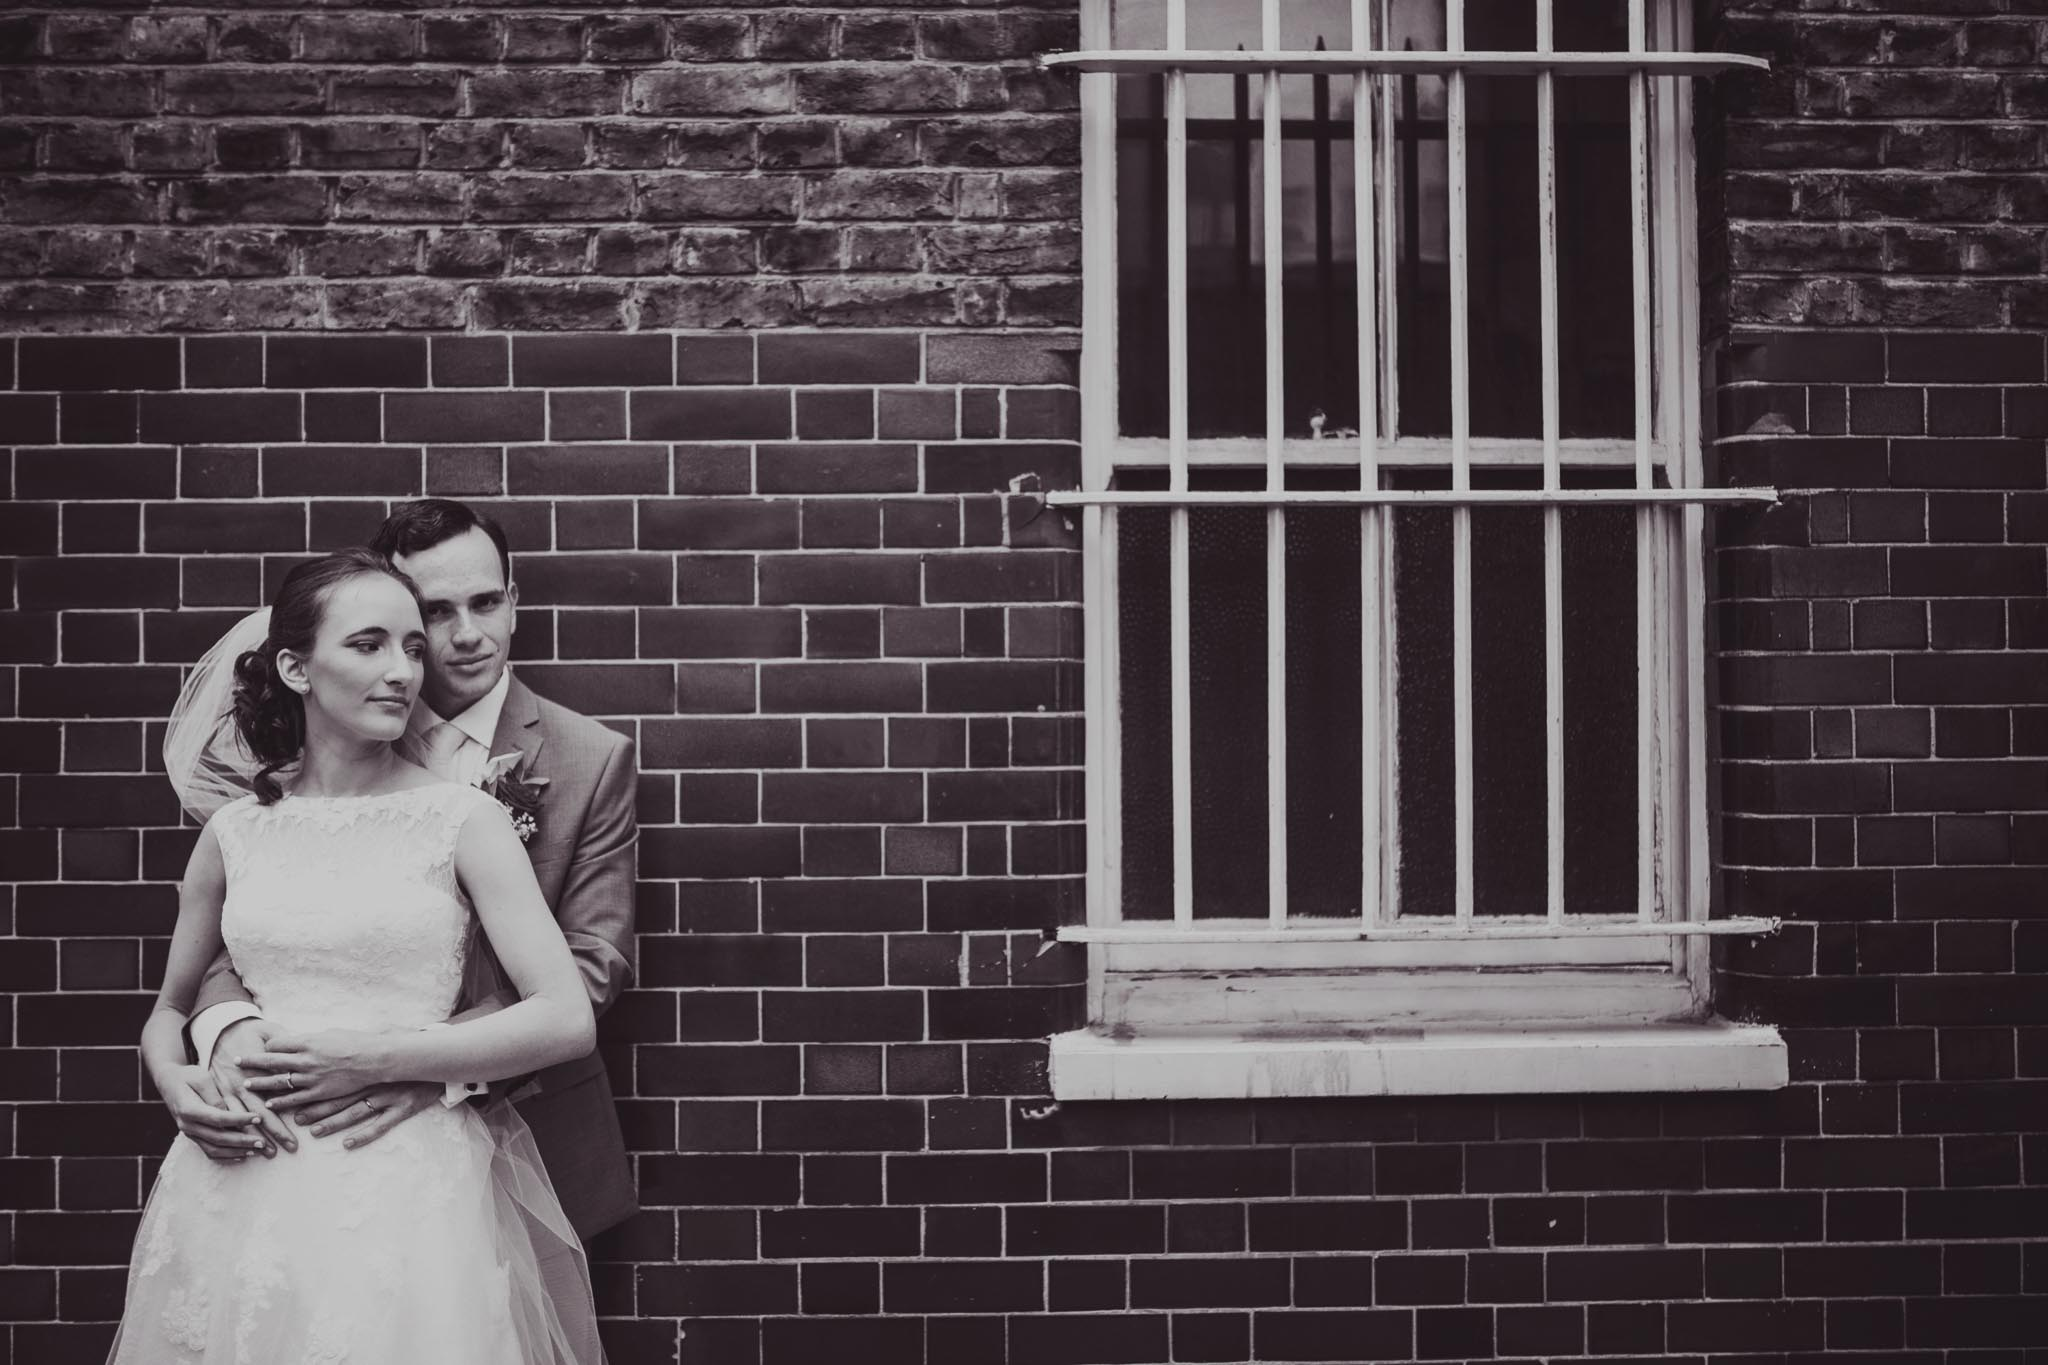 Tabea + Daniel // No. 11 Cavendish Square, W1